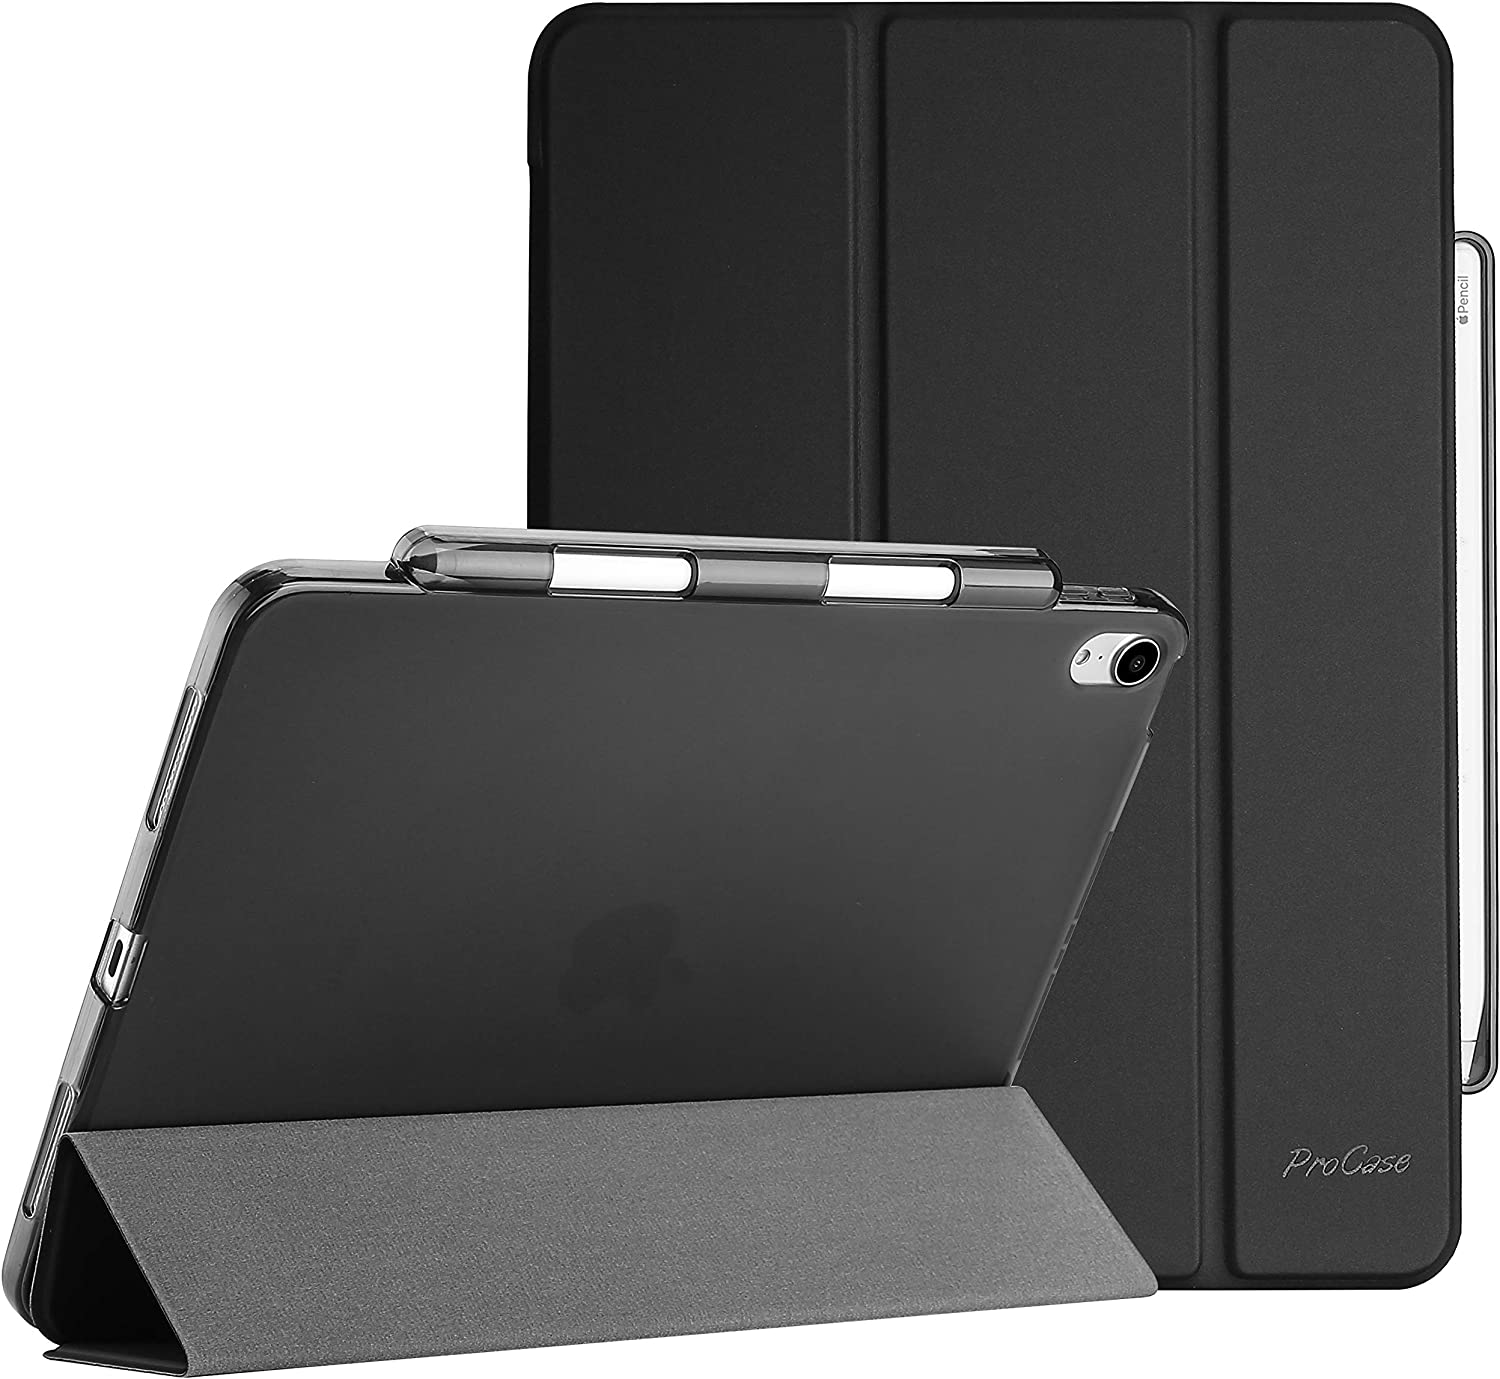 """ProCase New iPad Air 4 Case 10.9 2020 (Latest Model), Slim Case with Pencil Holder, Flexible Soft TPU Back Tri-fold Smart Shell Stand Protective Case for iPad Air 4th Generation 10.9"""" -Black"""